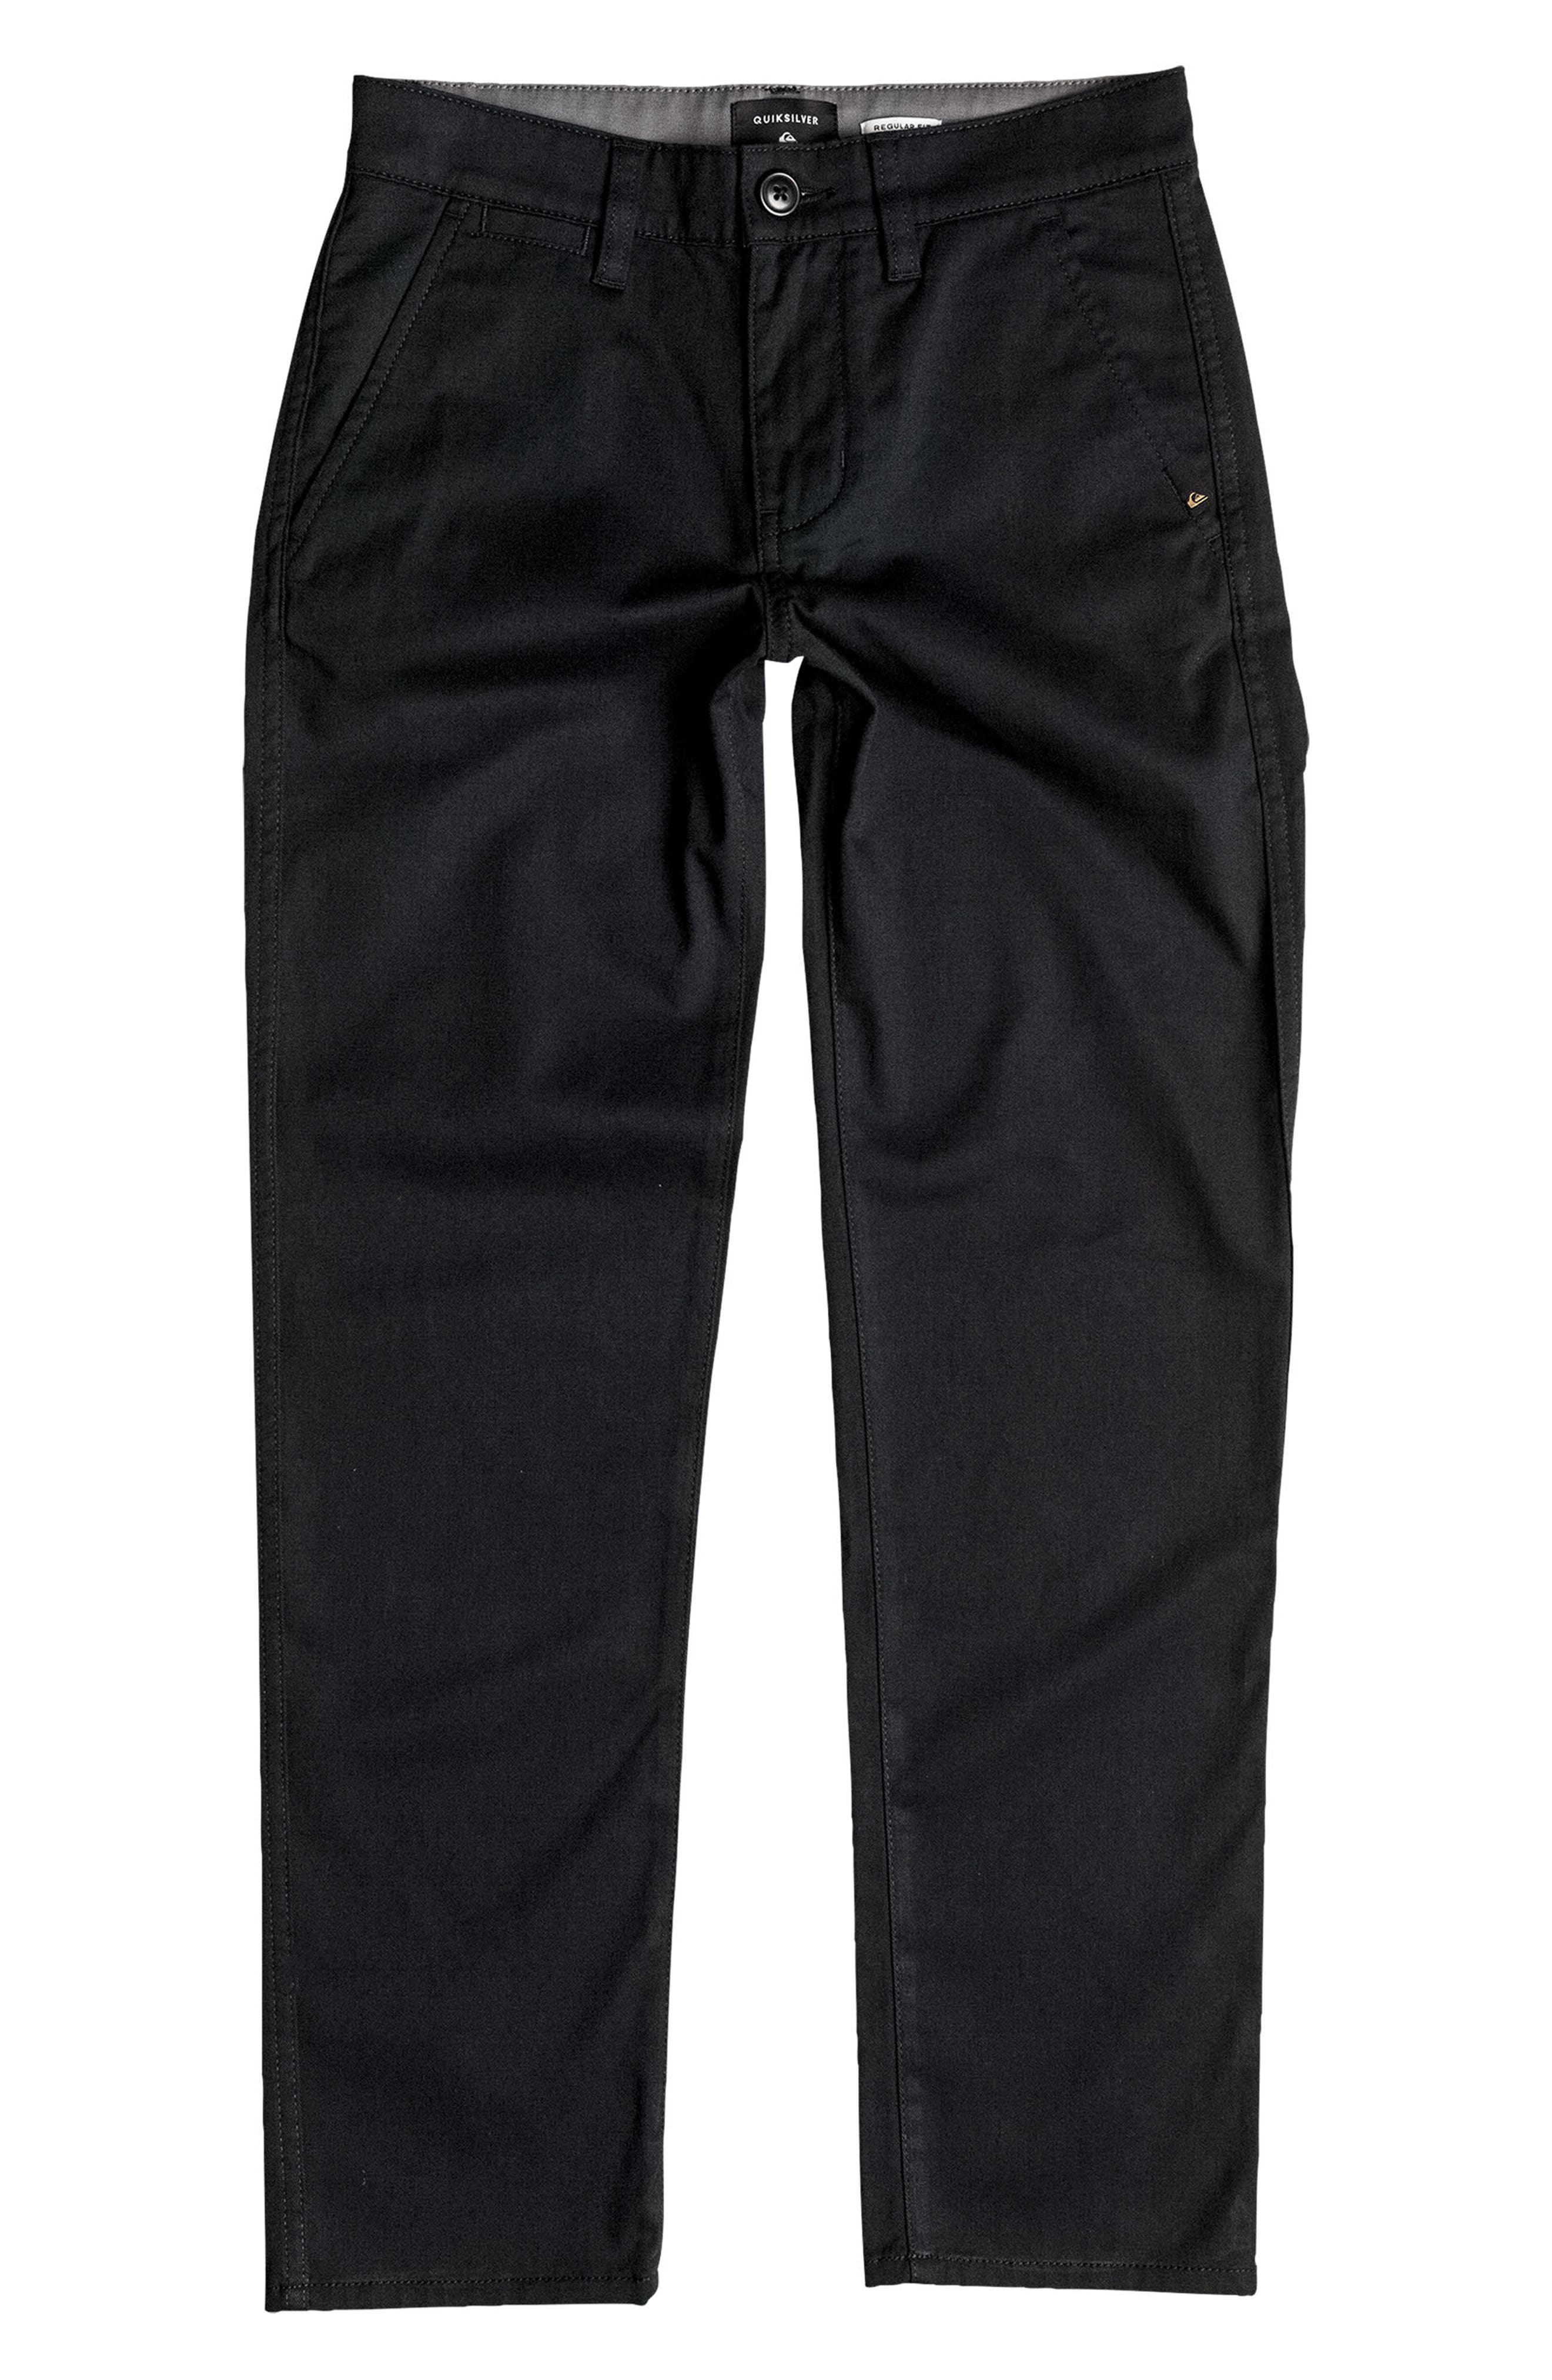 Regular Fit Everyday Union Pants,                         Main,                         color, Black